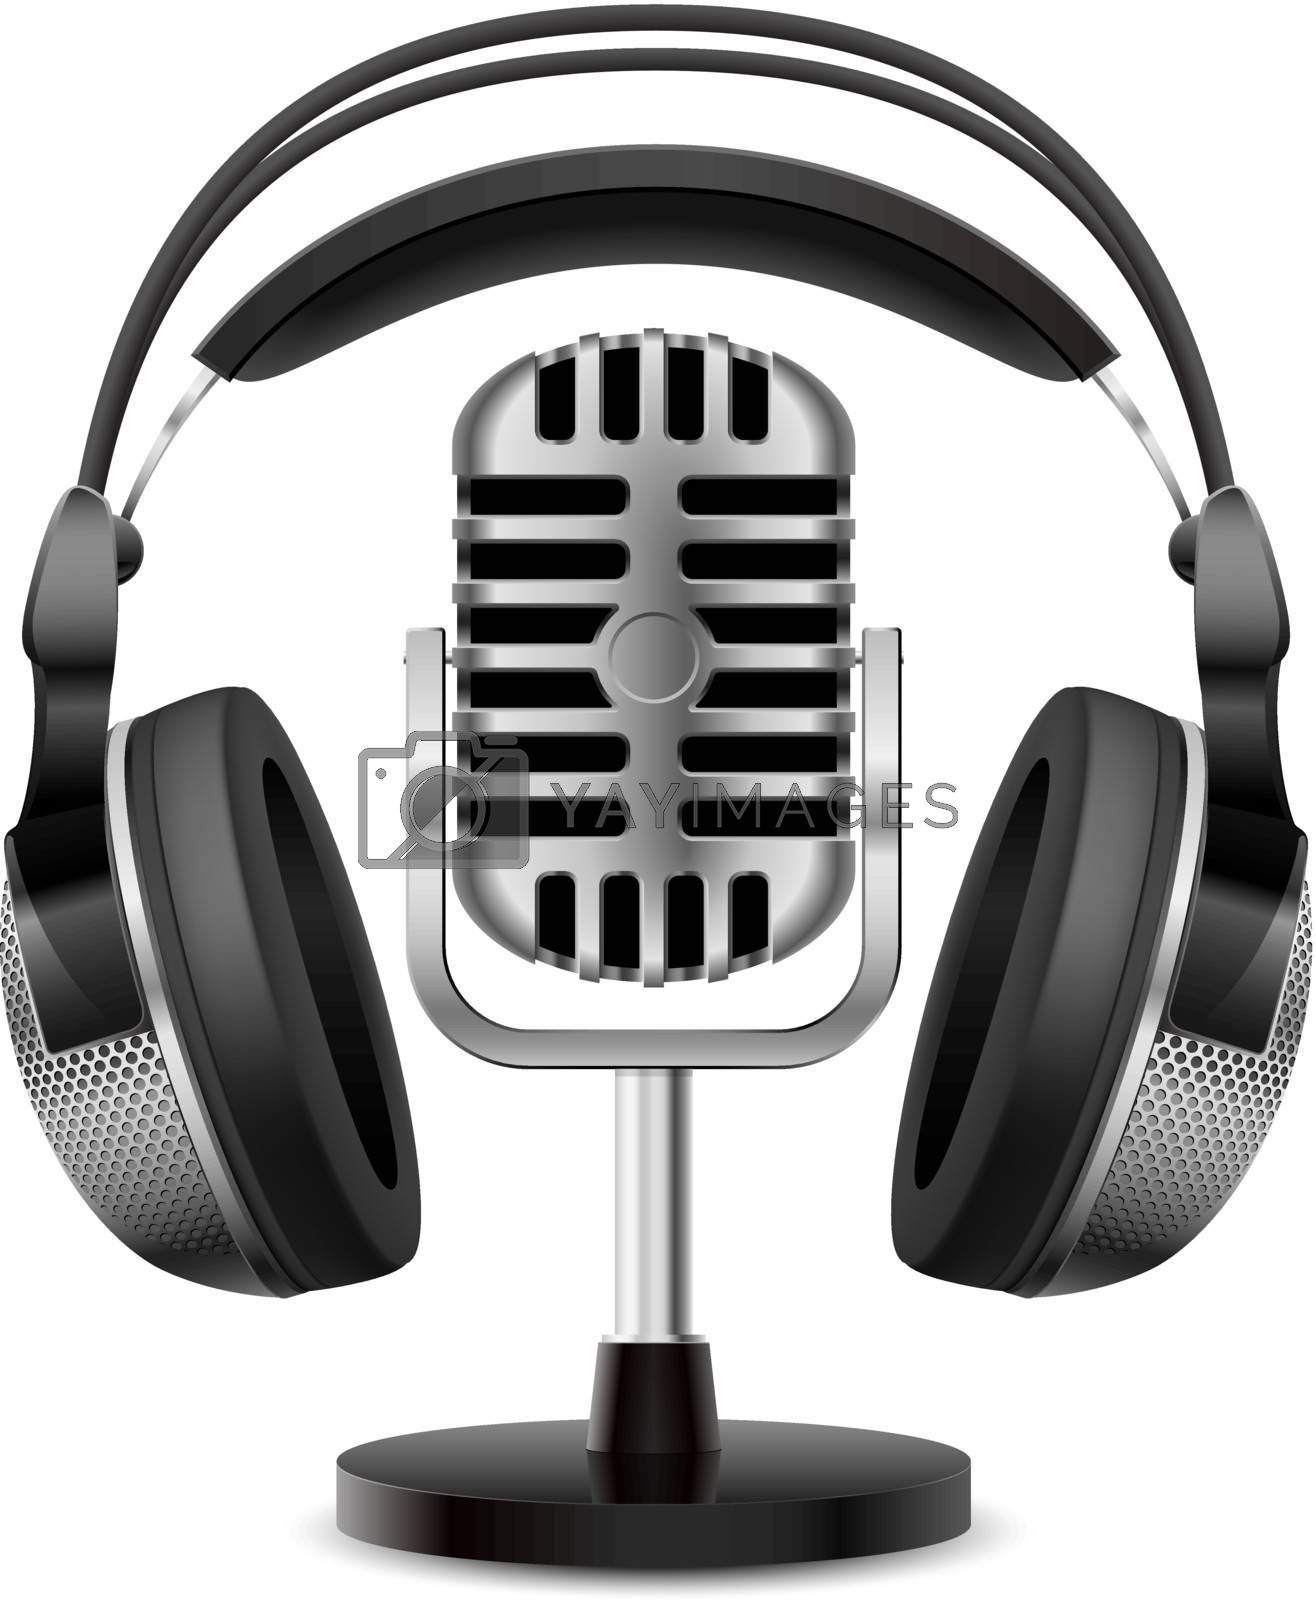 Realistic retro microphone and headphones. Illustration on white background for design